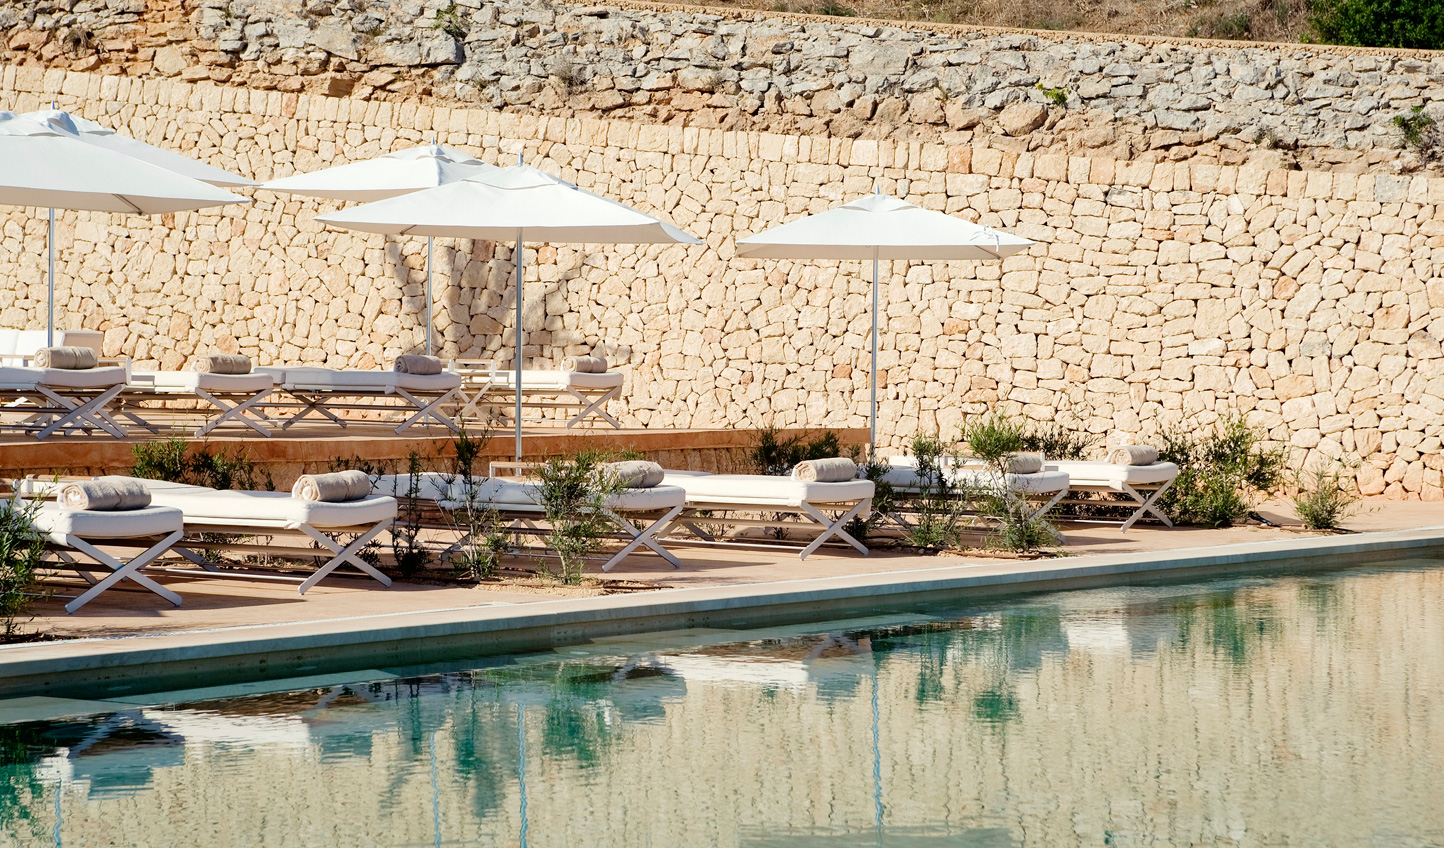 Soak in the Mallorcan sun by the pool